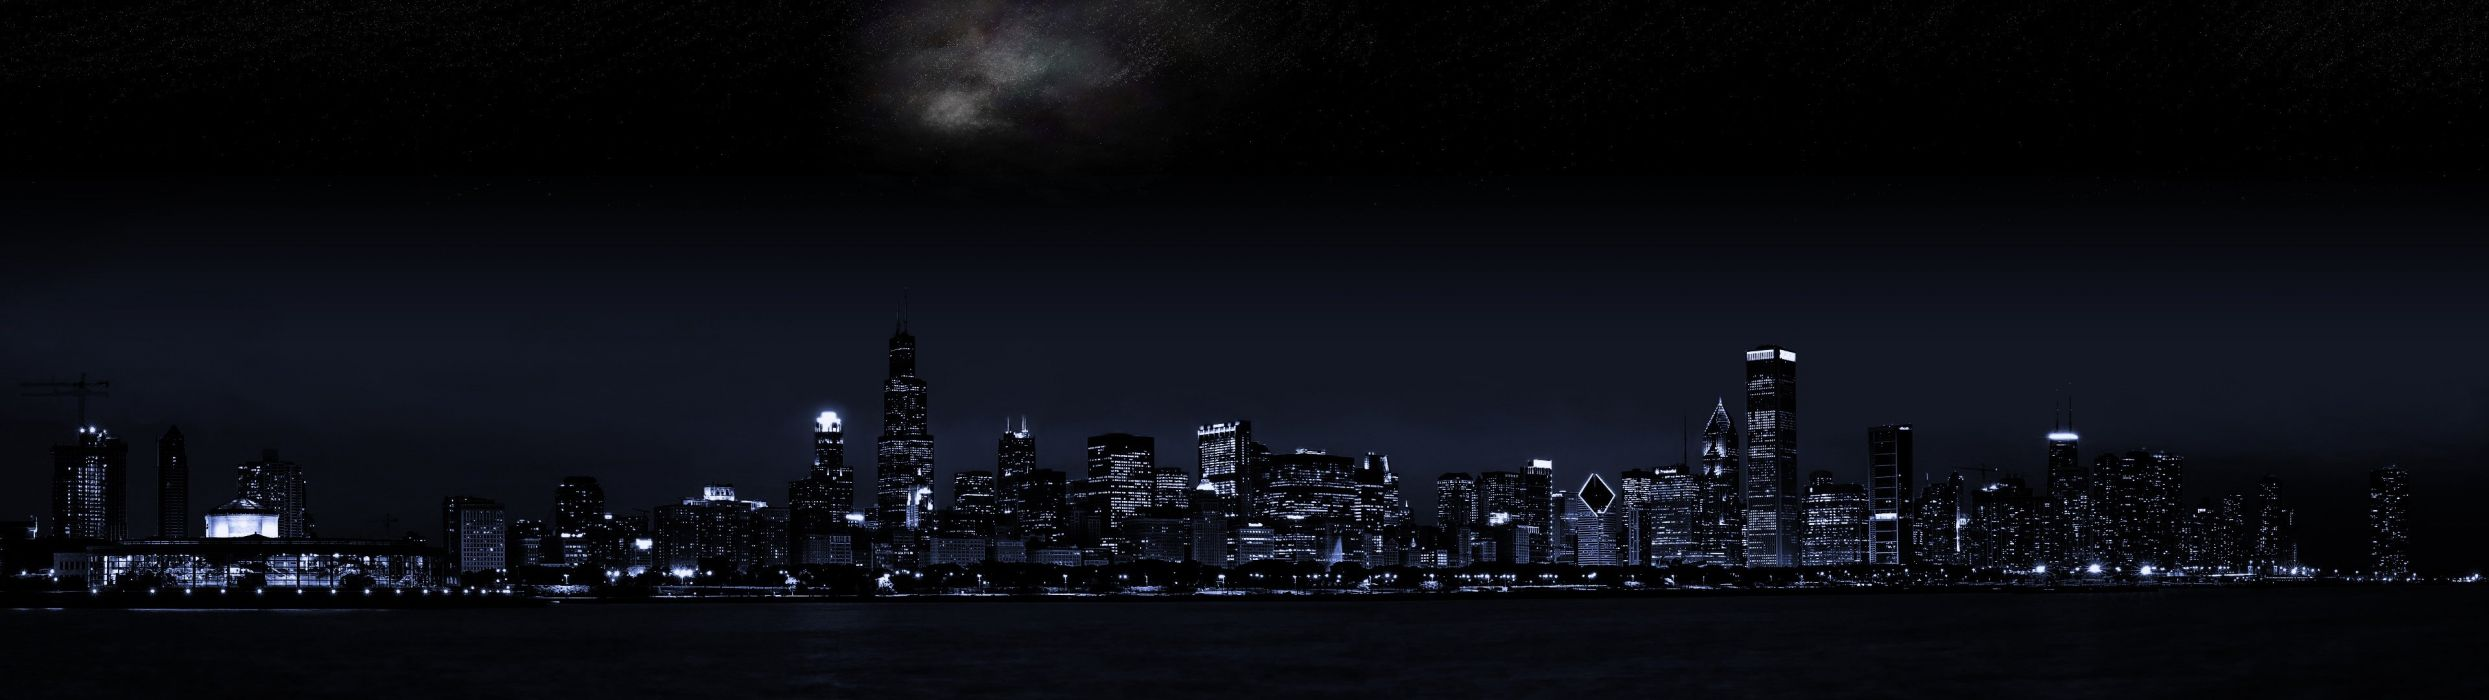 cityscape double screen dark wallpaper